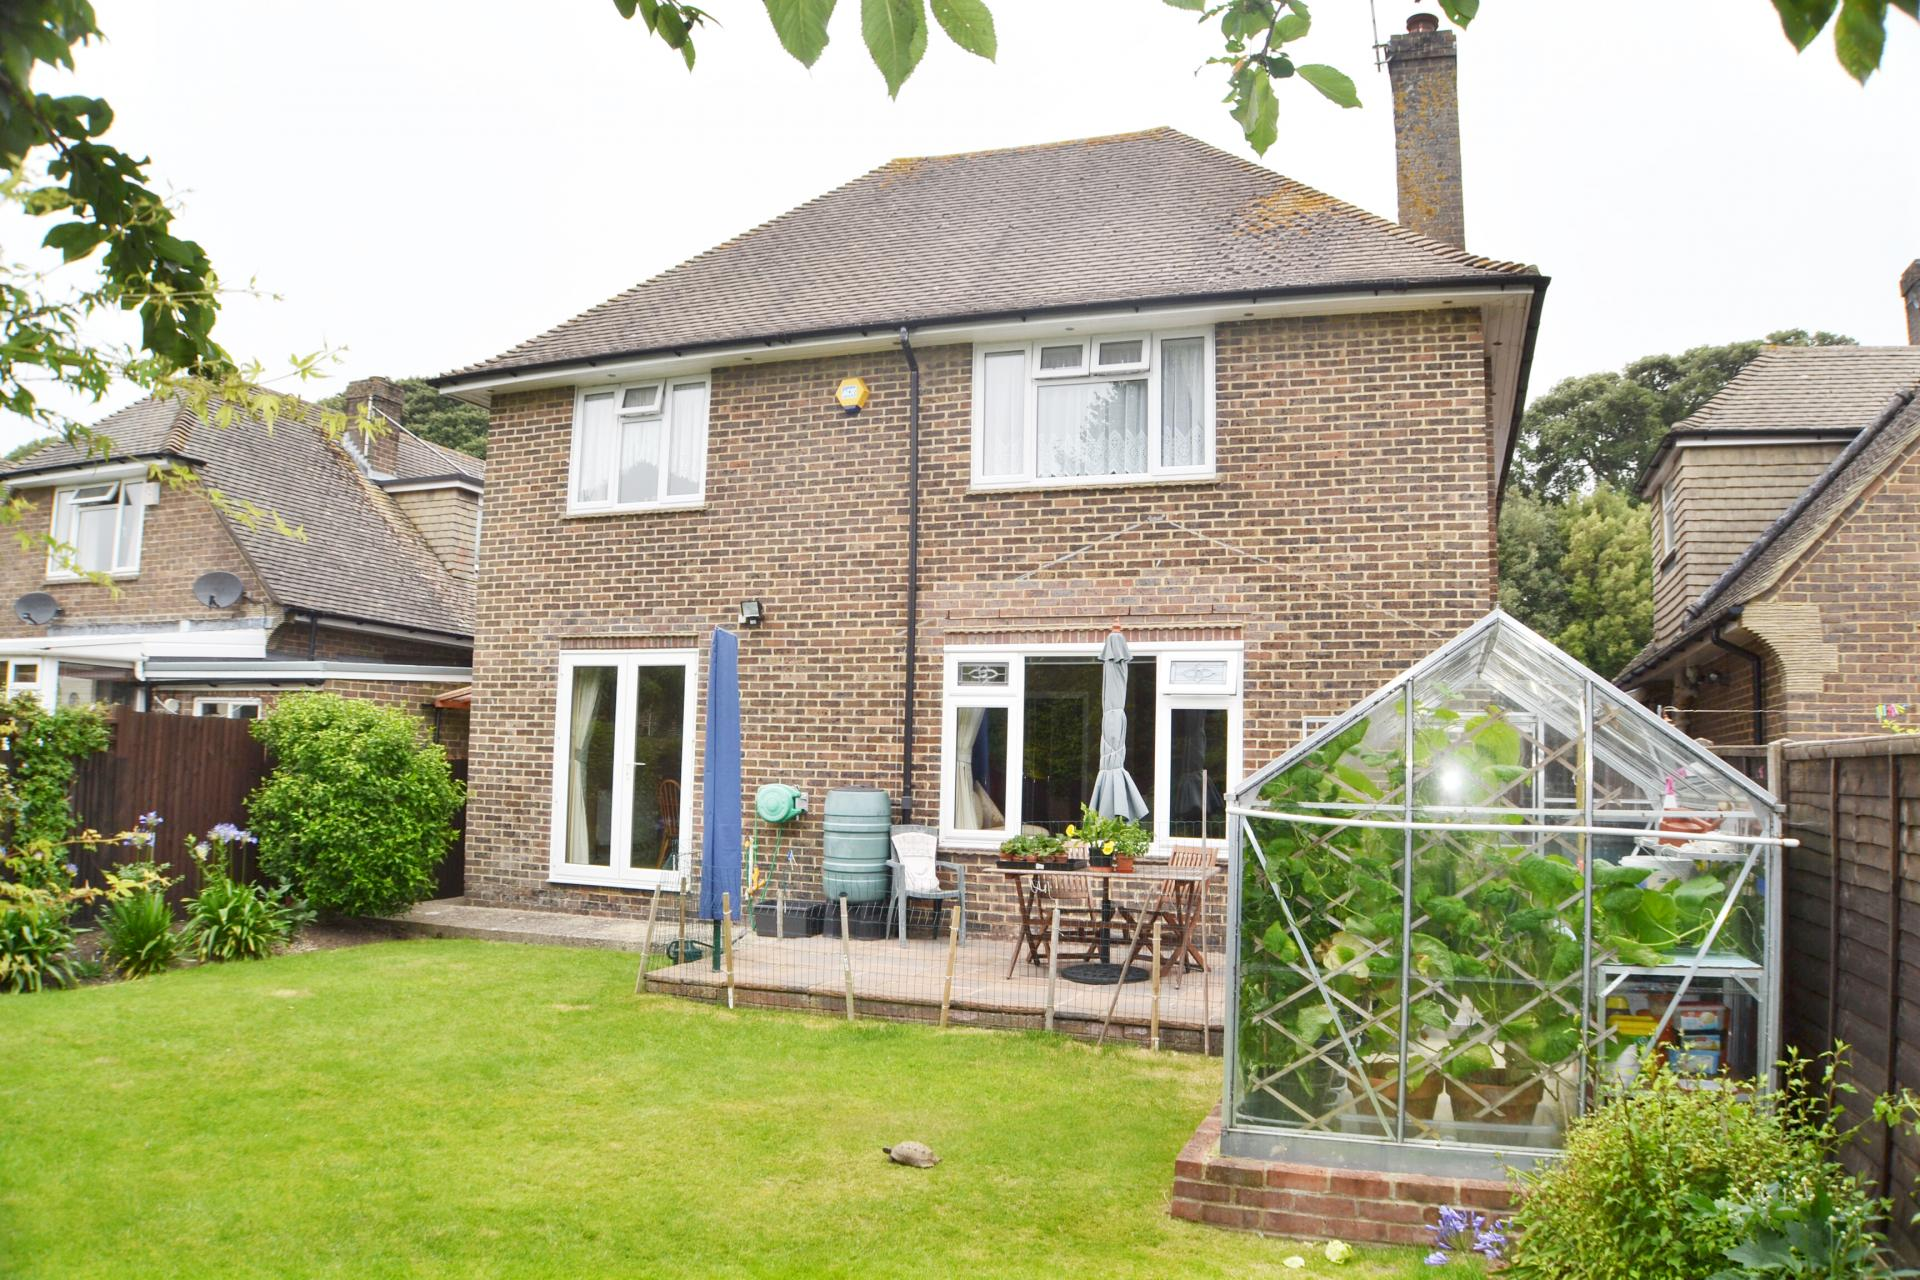 Property For Sale In Ferring By Sea